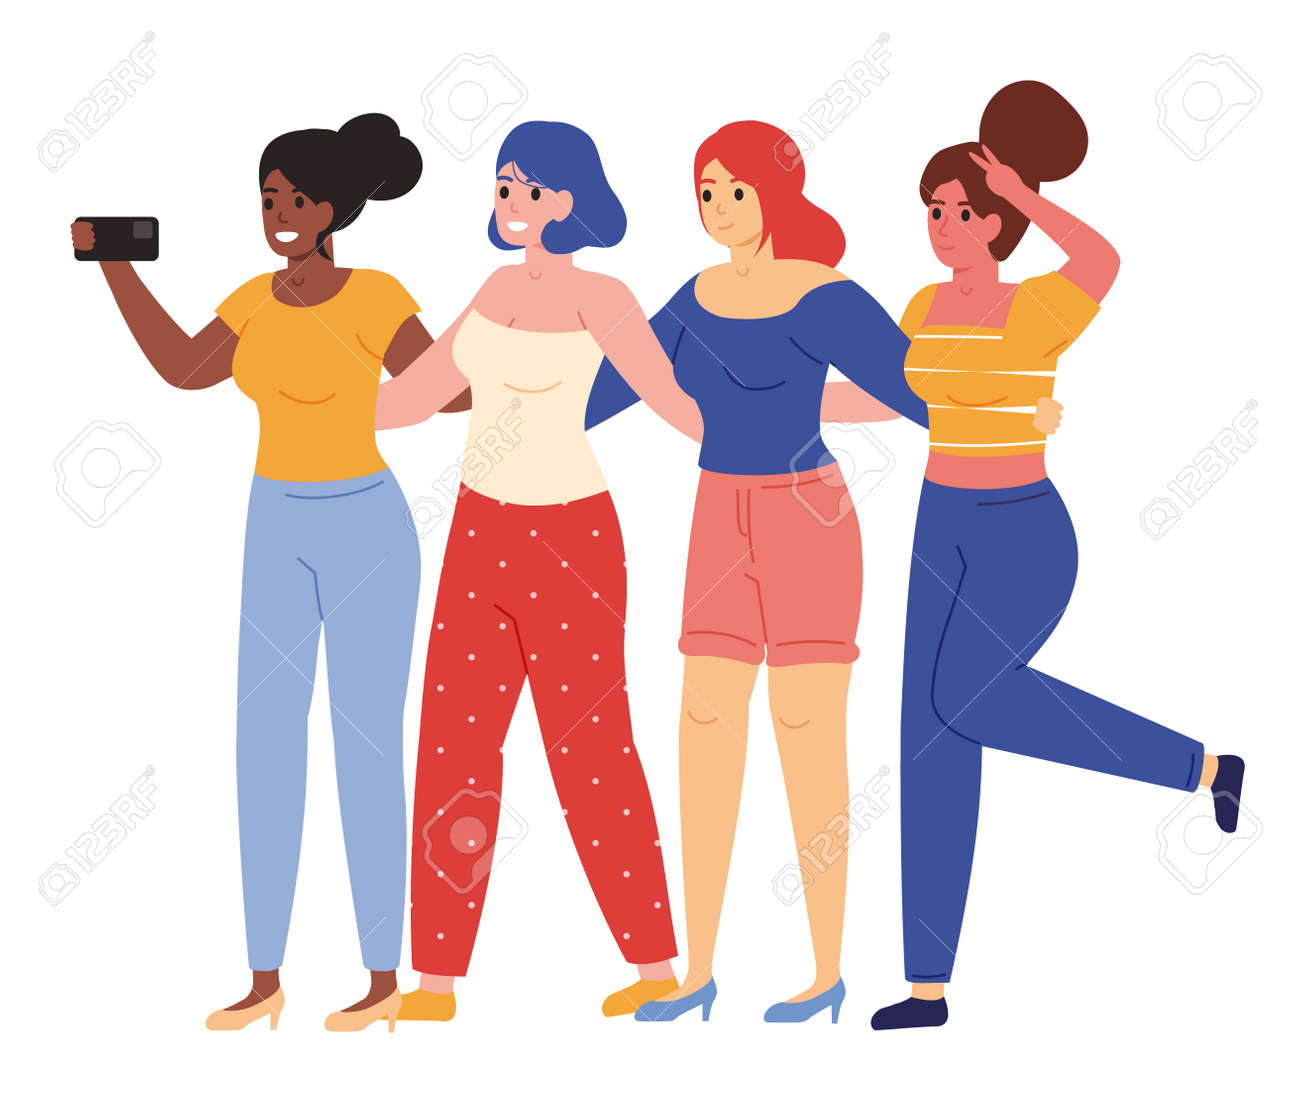 Female friends taking selfie. Happy young girlfriends posing for group selfie vector illustration. Female friendship concept - 168761873